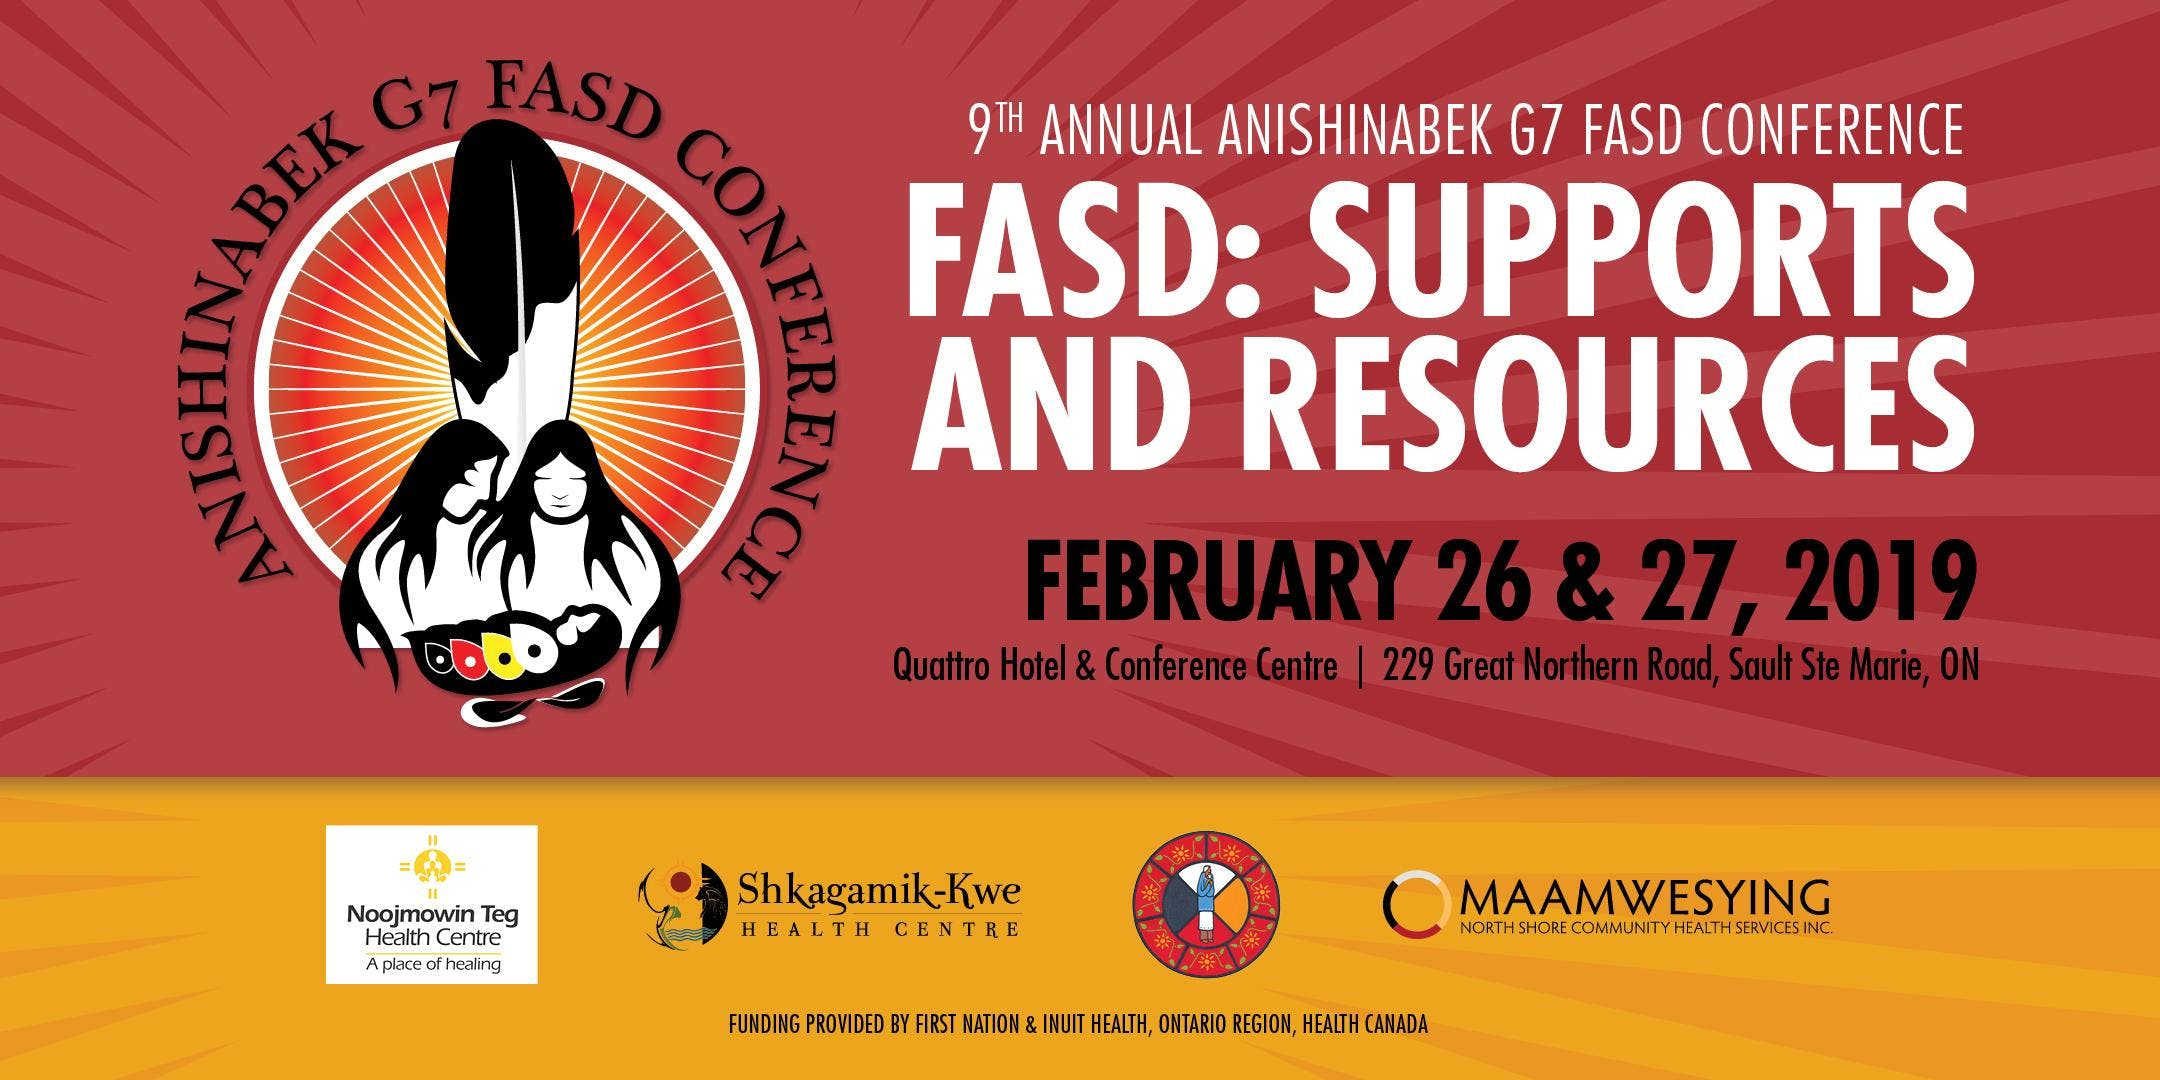 Anishinabek G7 FASD Conference - FASD: Supports & Resources